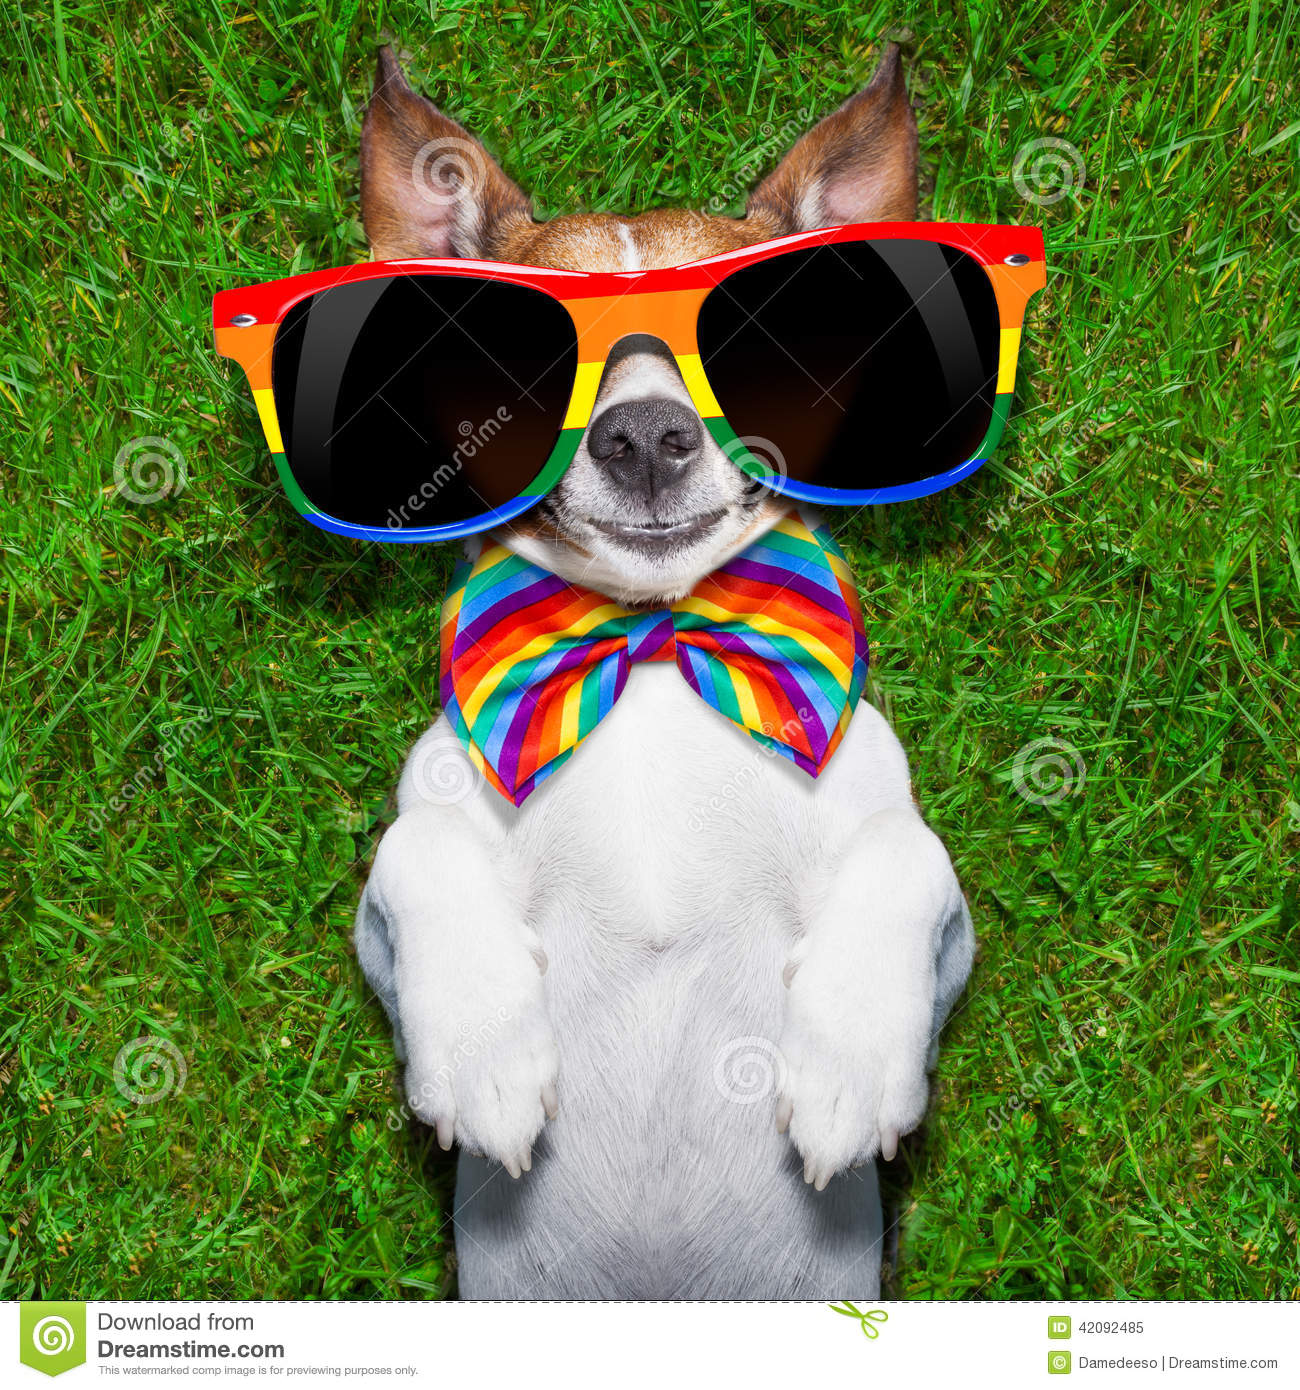 Super funny gay dog lying on back on green grass looking cool.